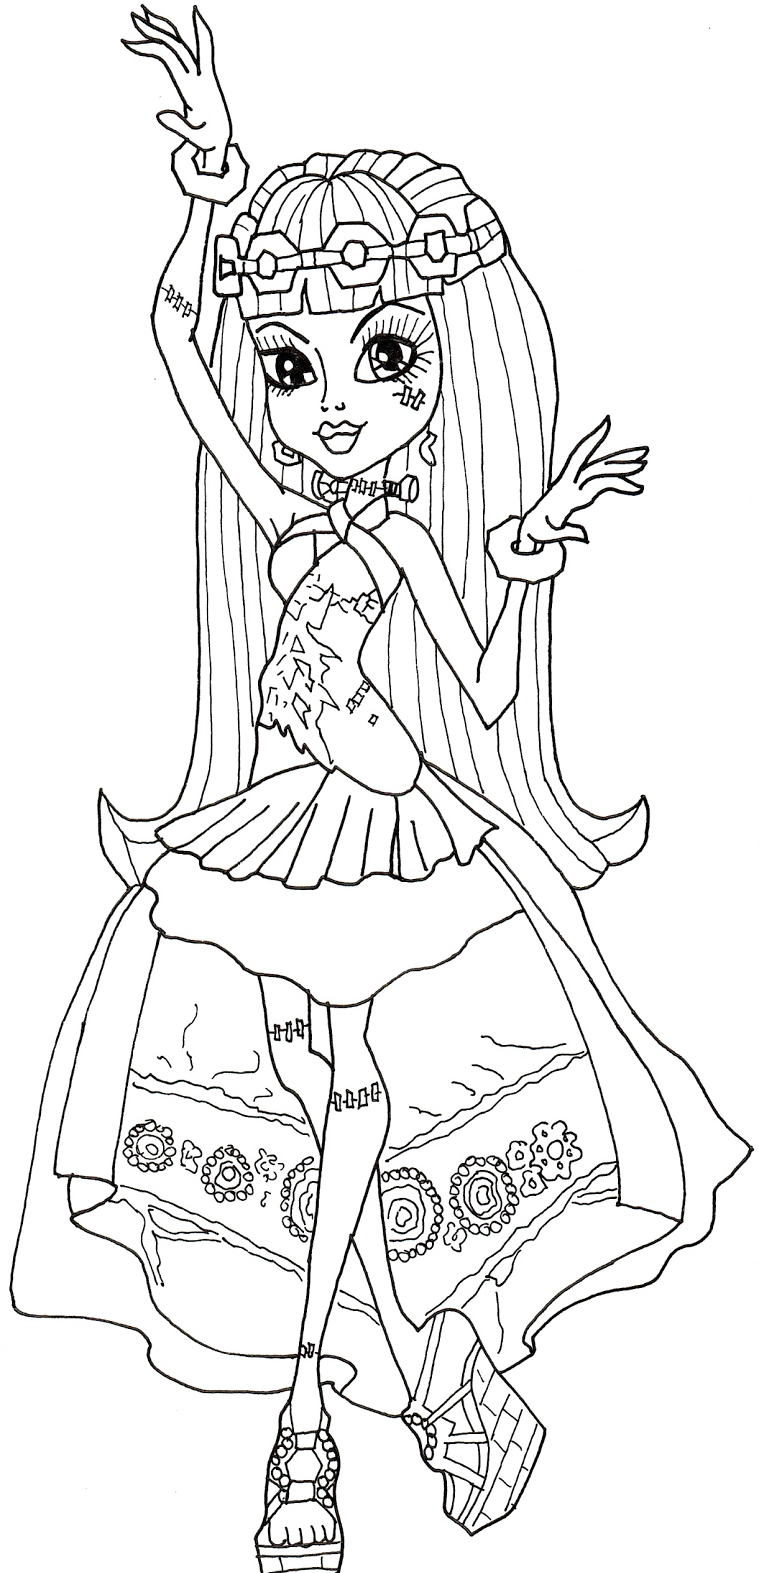 Monster High Frankie Stein Dancing Coloring Pages | Coloring Parties ...